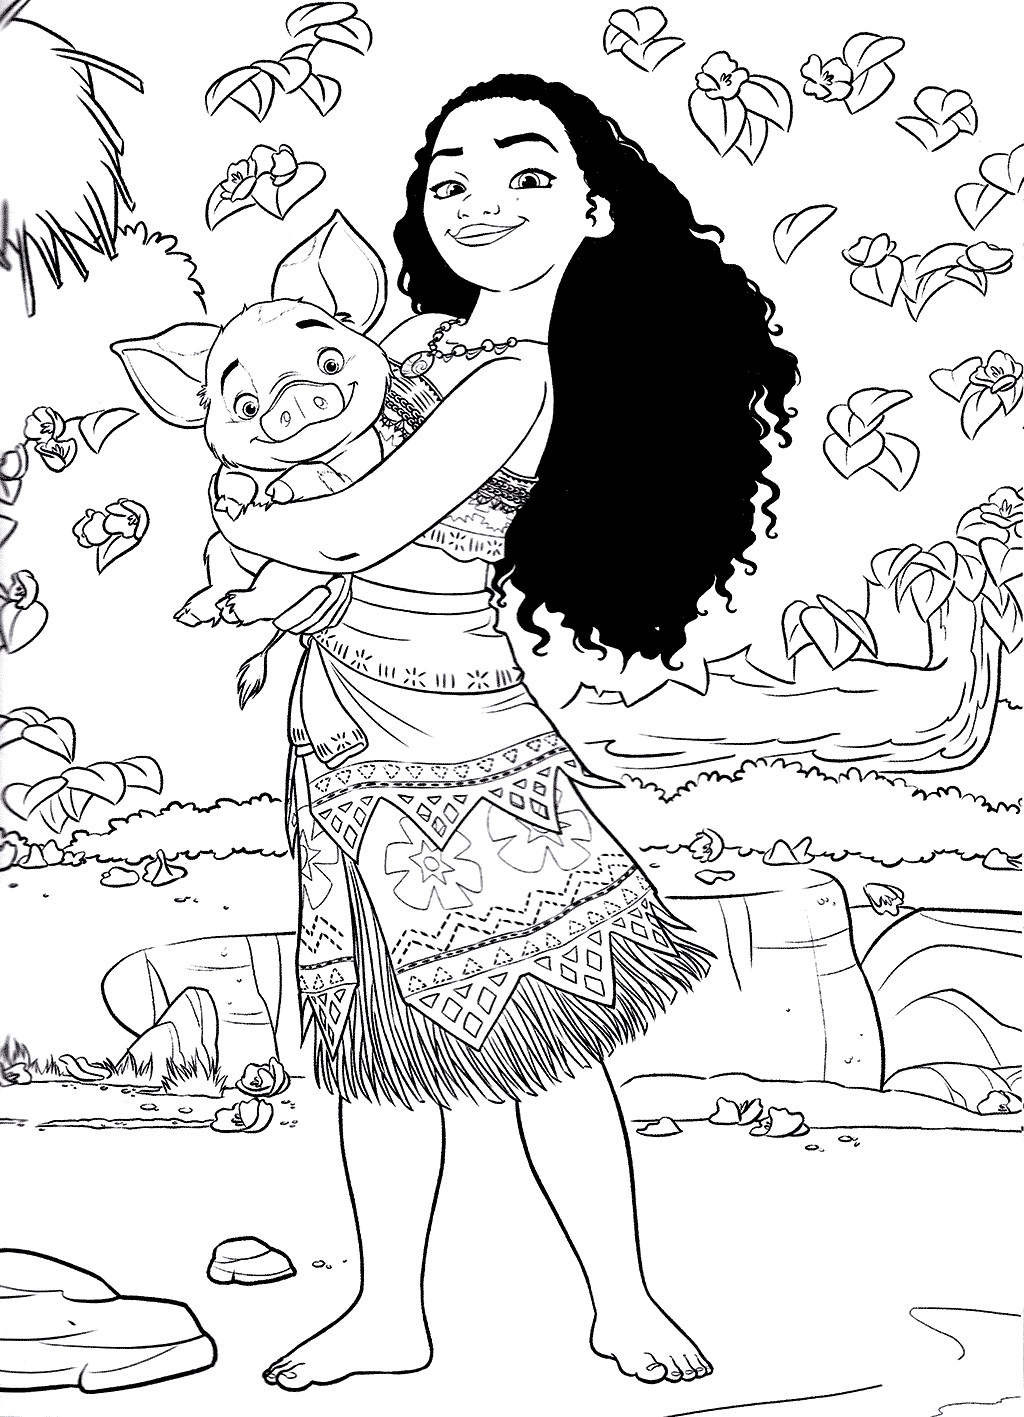 Moana Pua Coloring Pages  Moana Coloring Pages Best Coloring Pages For Kids